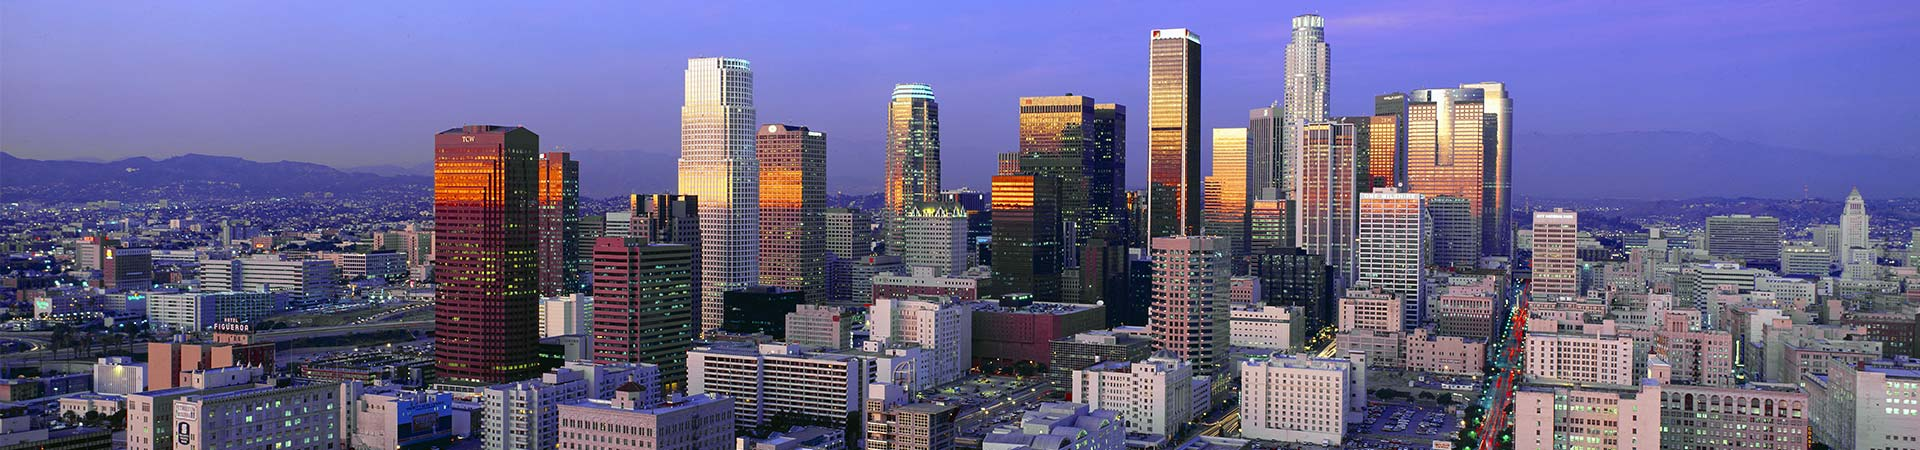 los-angeles-header